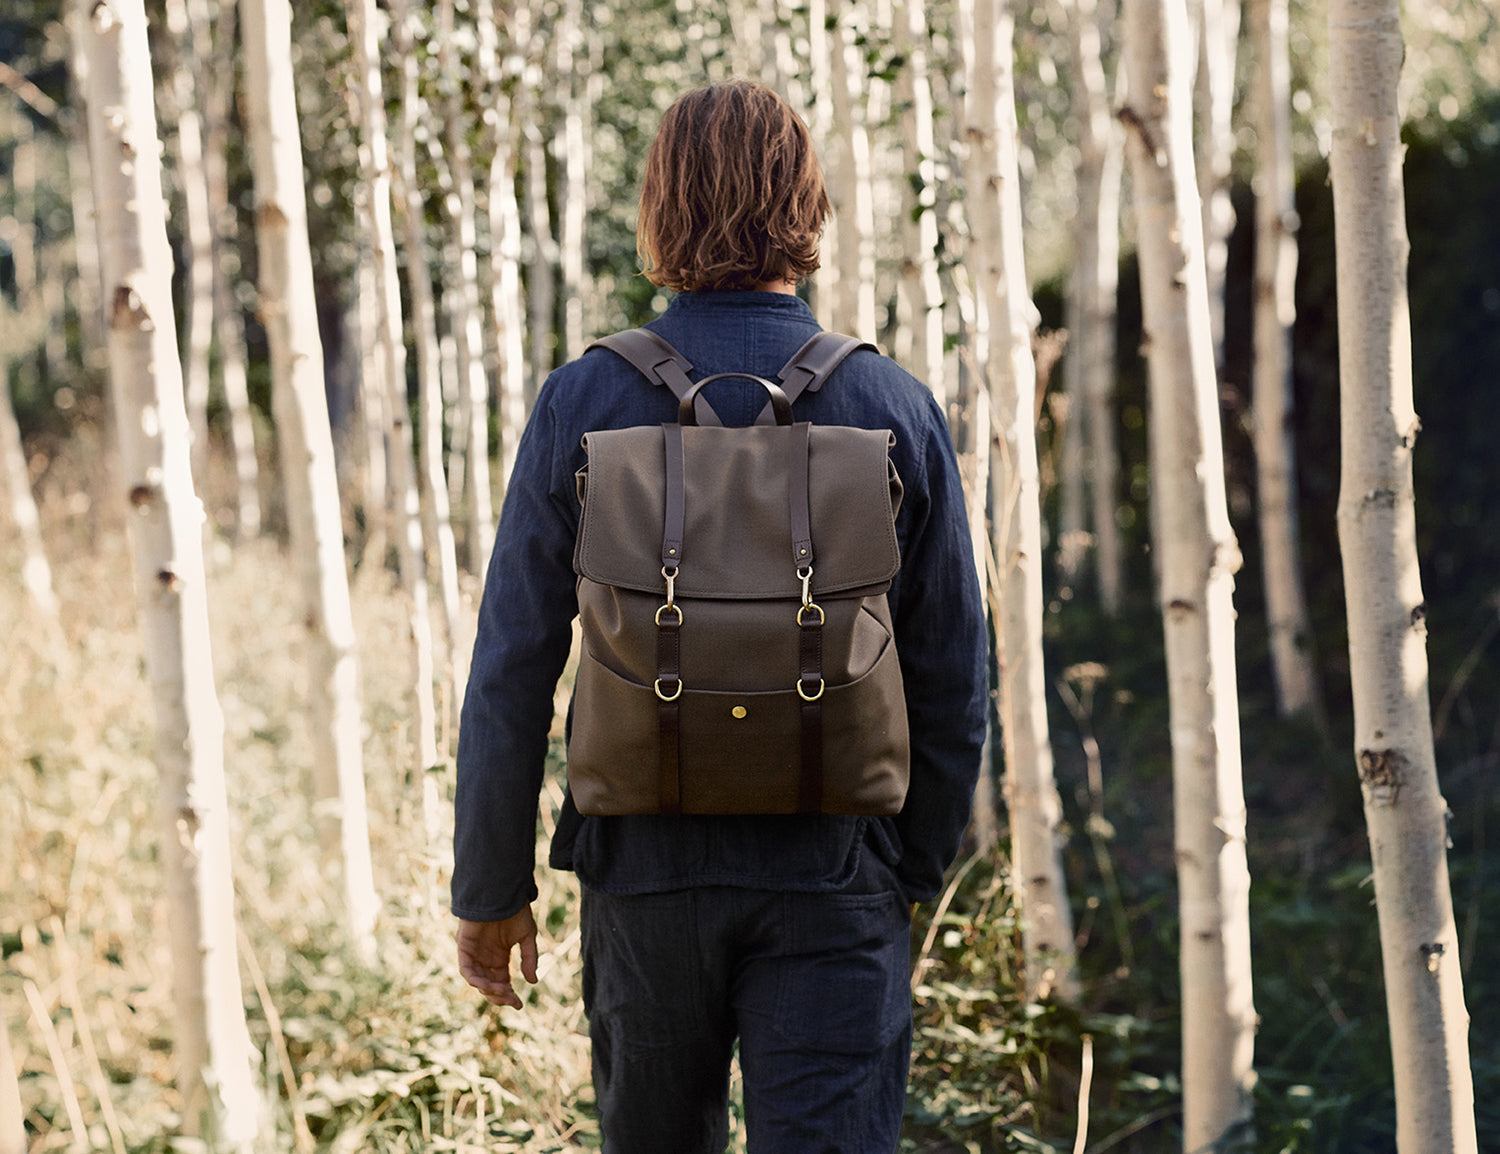 M/S Backpack - Army/Dark brown